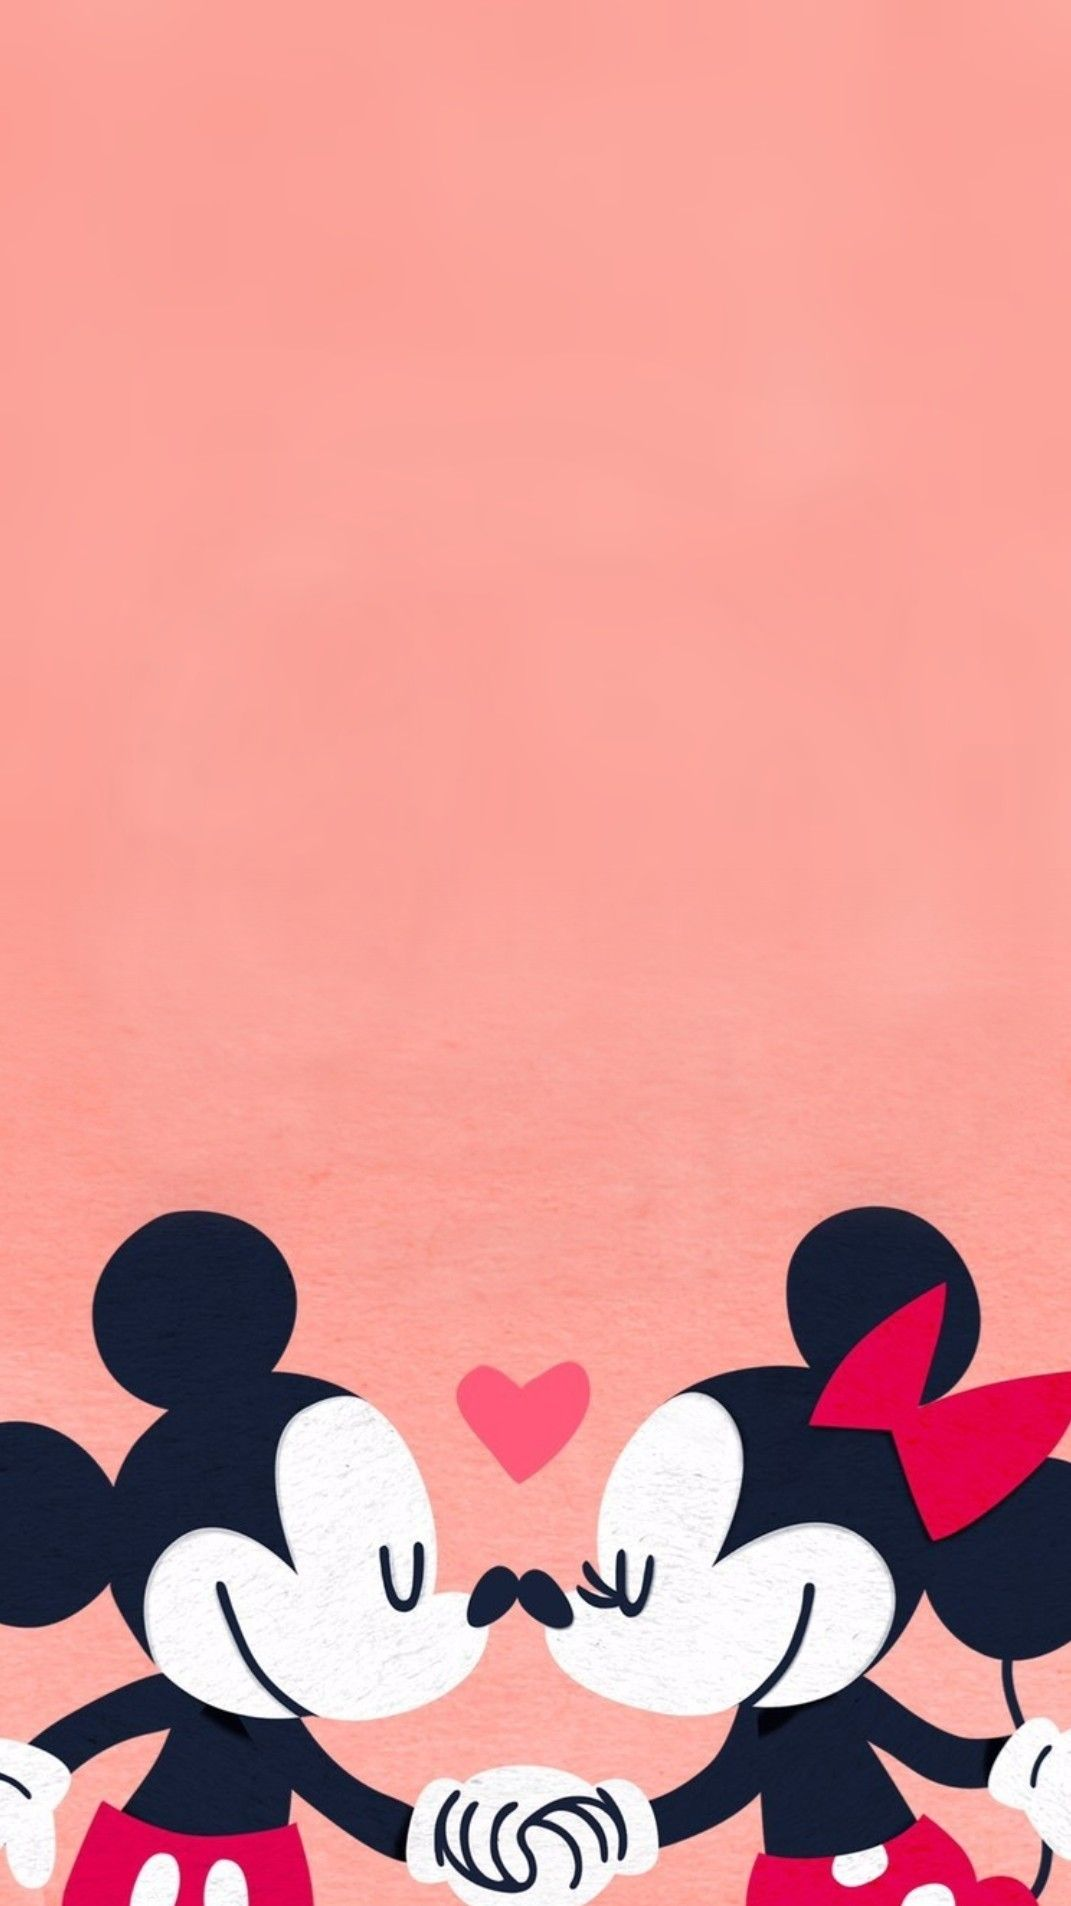 Pin By Disney Lovers On Disney Wallpapers Valentines Wallpaper Mickey Mouse Wallpaper Disney Phone Backgrounds